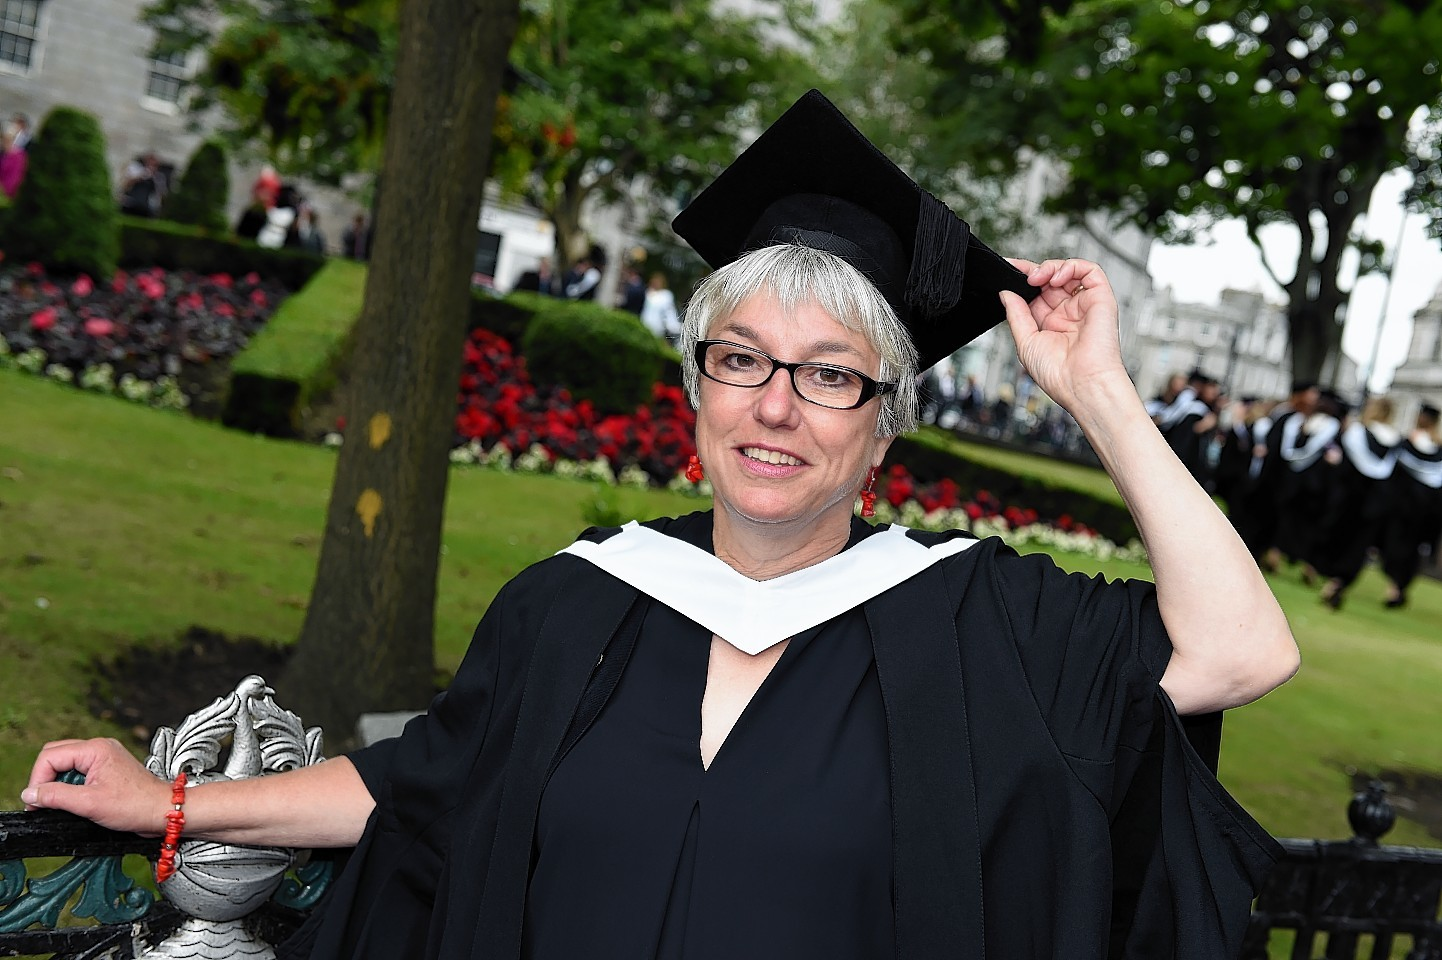 RGU Graduations at HMT wednesday morning ;  Pictured - Joan Sandison of Shetland.      Picture by Kami Thomson    16-07-15